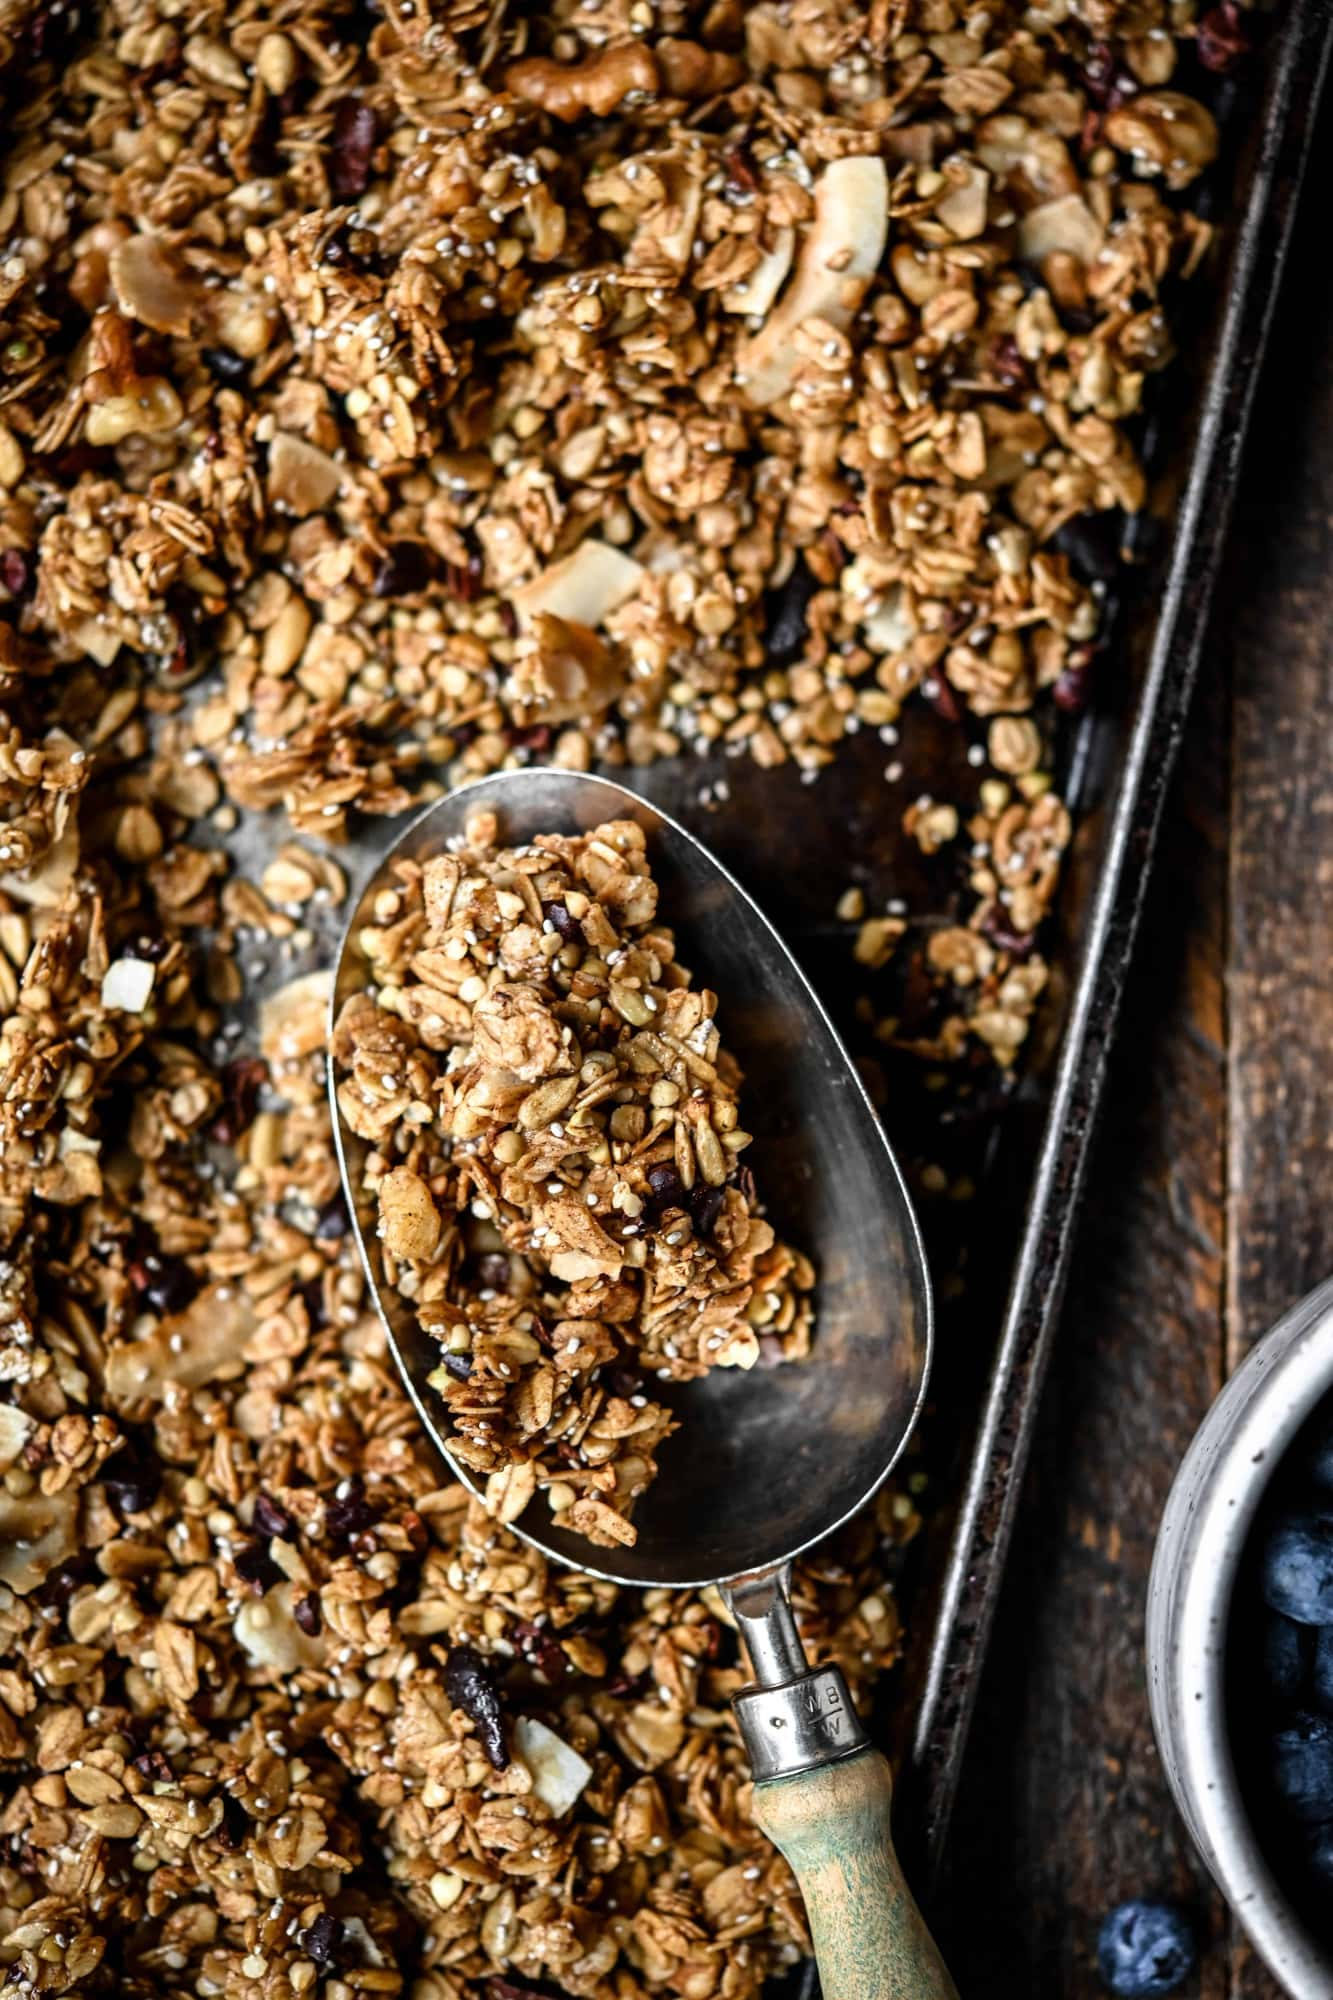 Overhead view of gluten free granola on a sheet pan, close up view of granola in a scoop